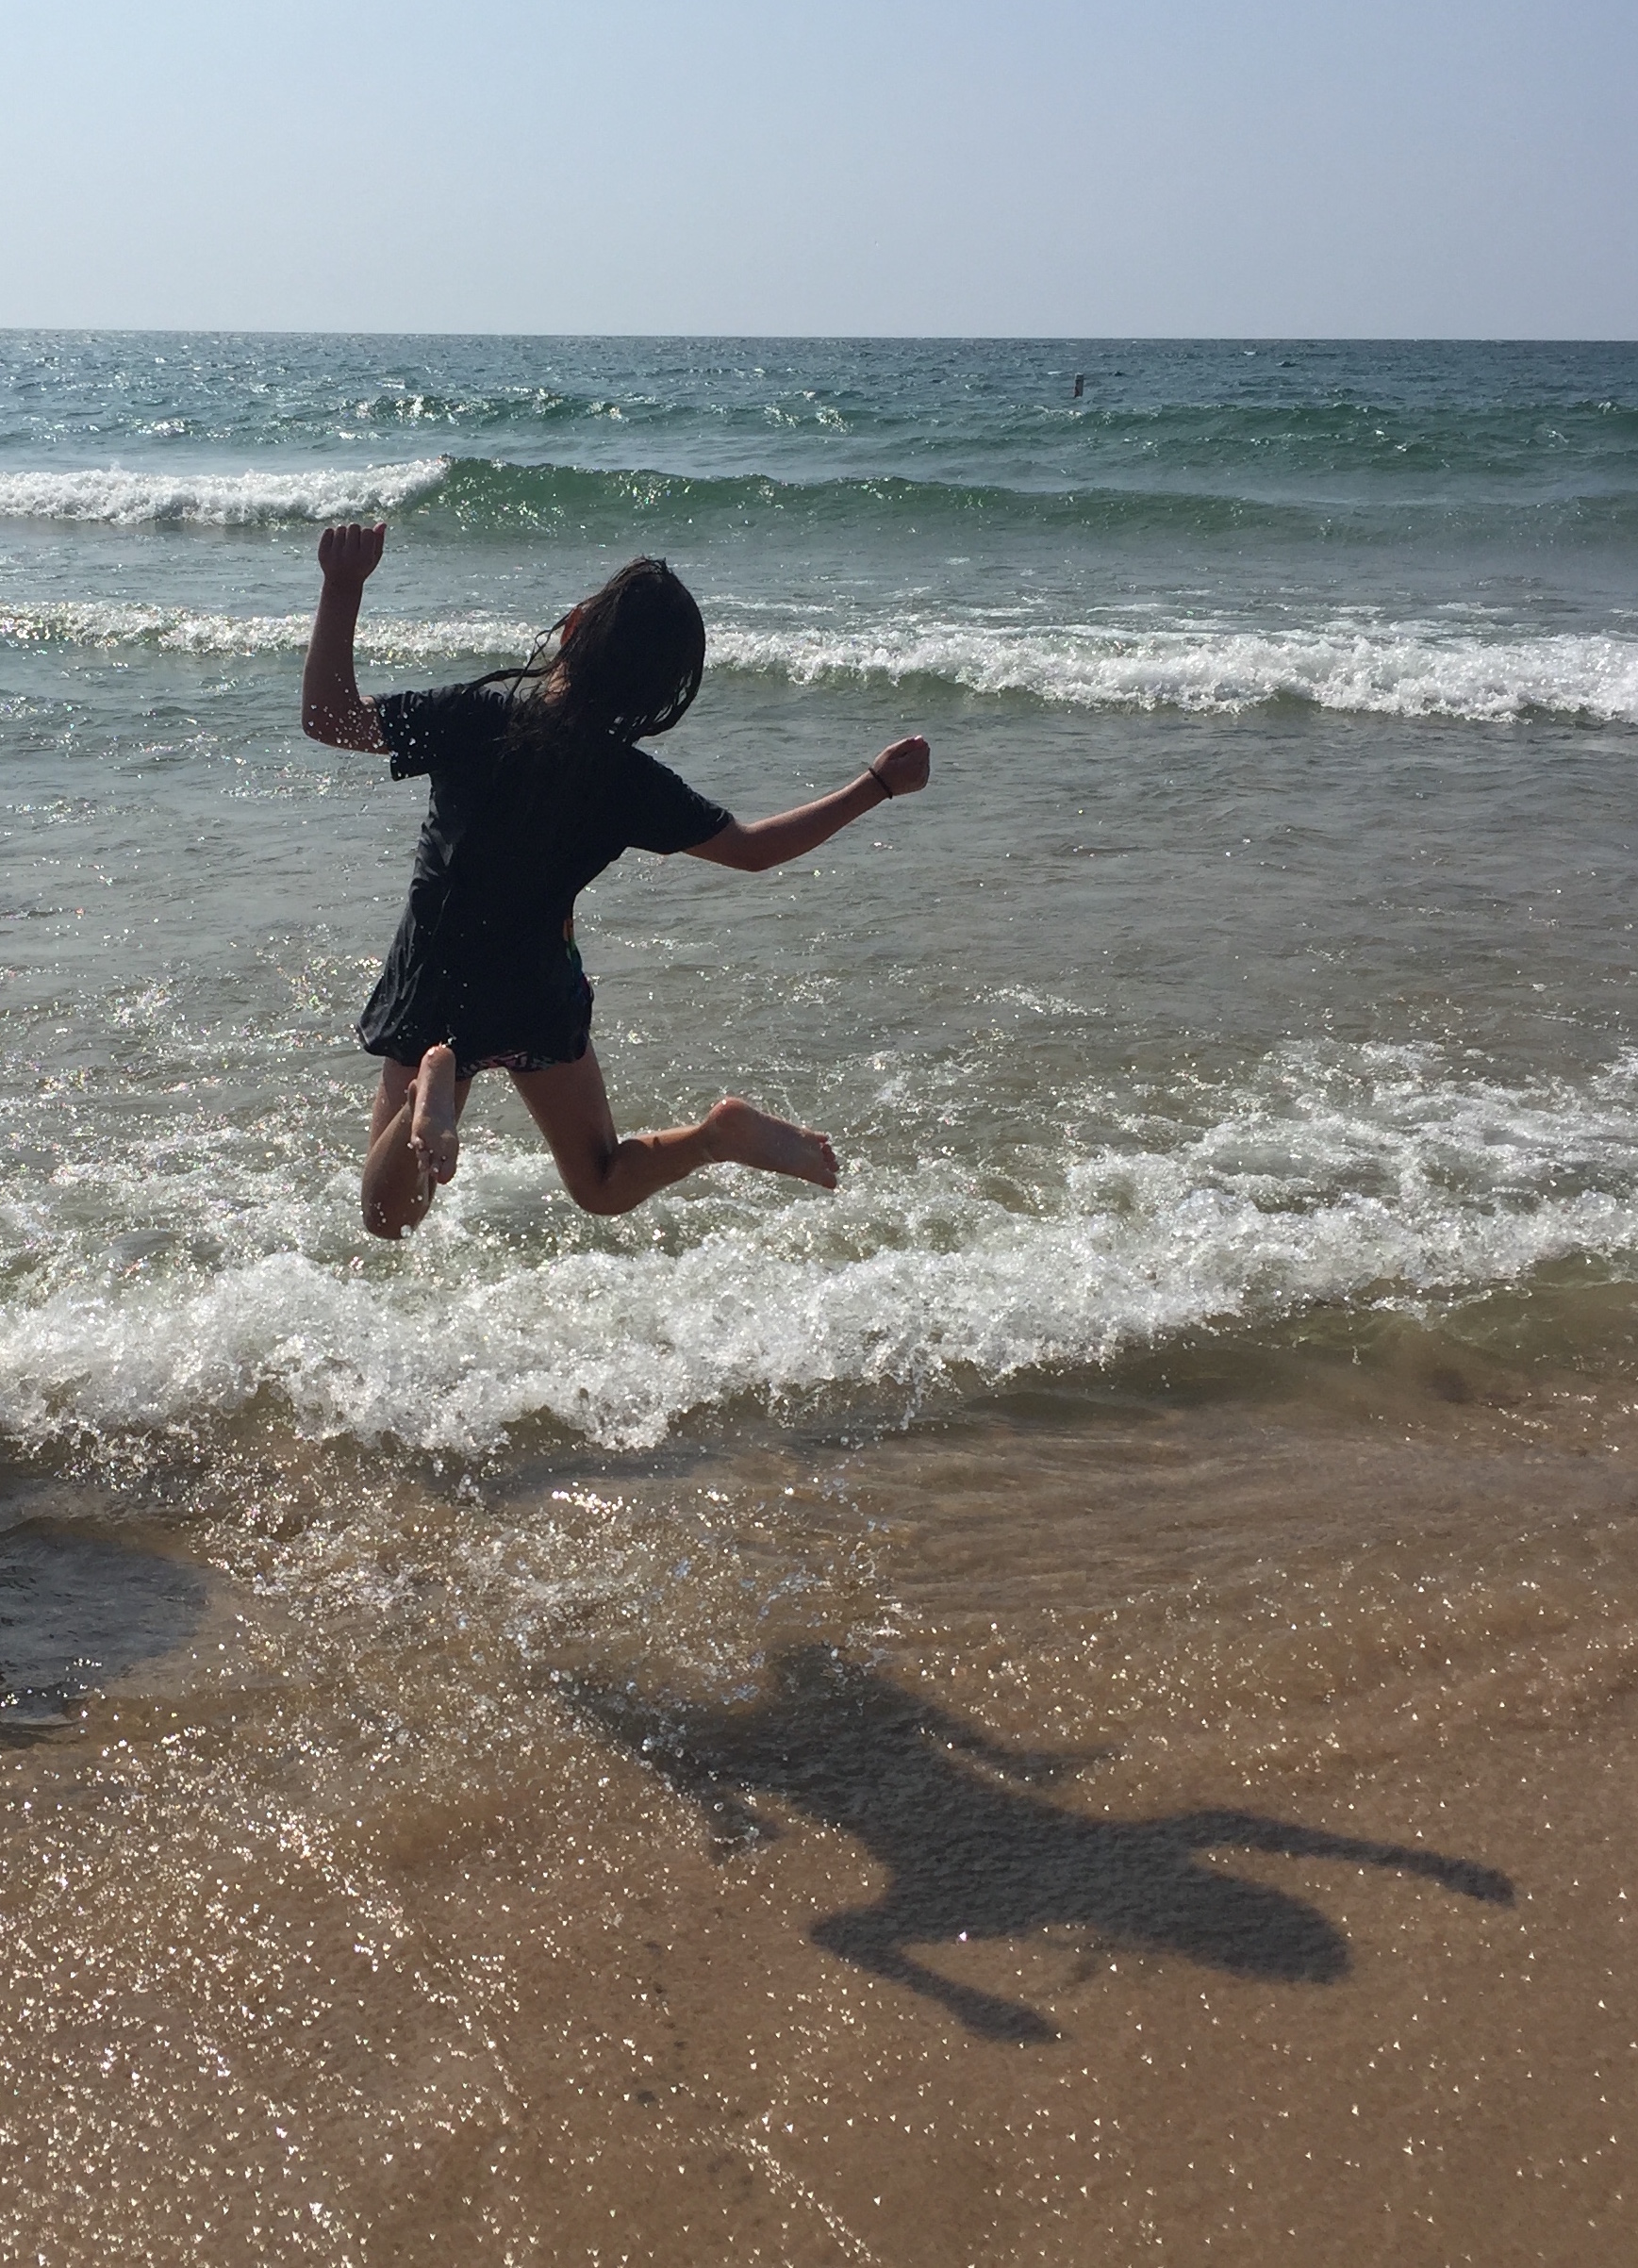 My daughter, squeezing everything out of life this summer